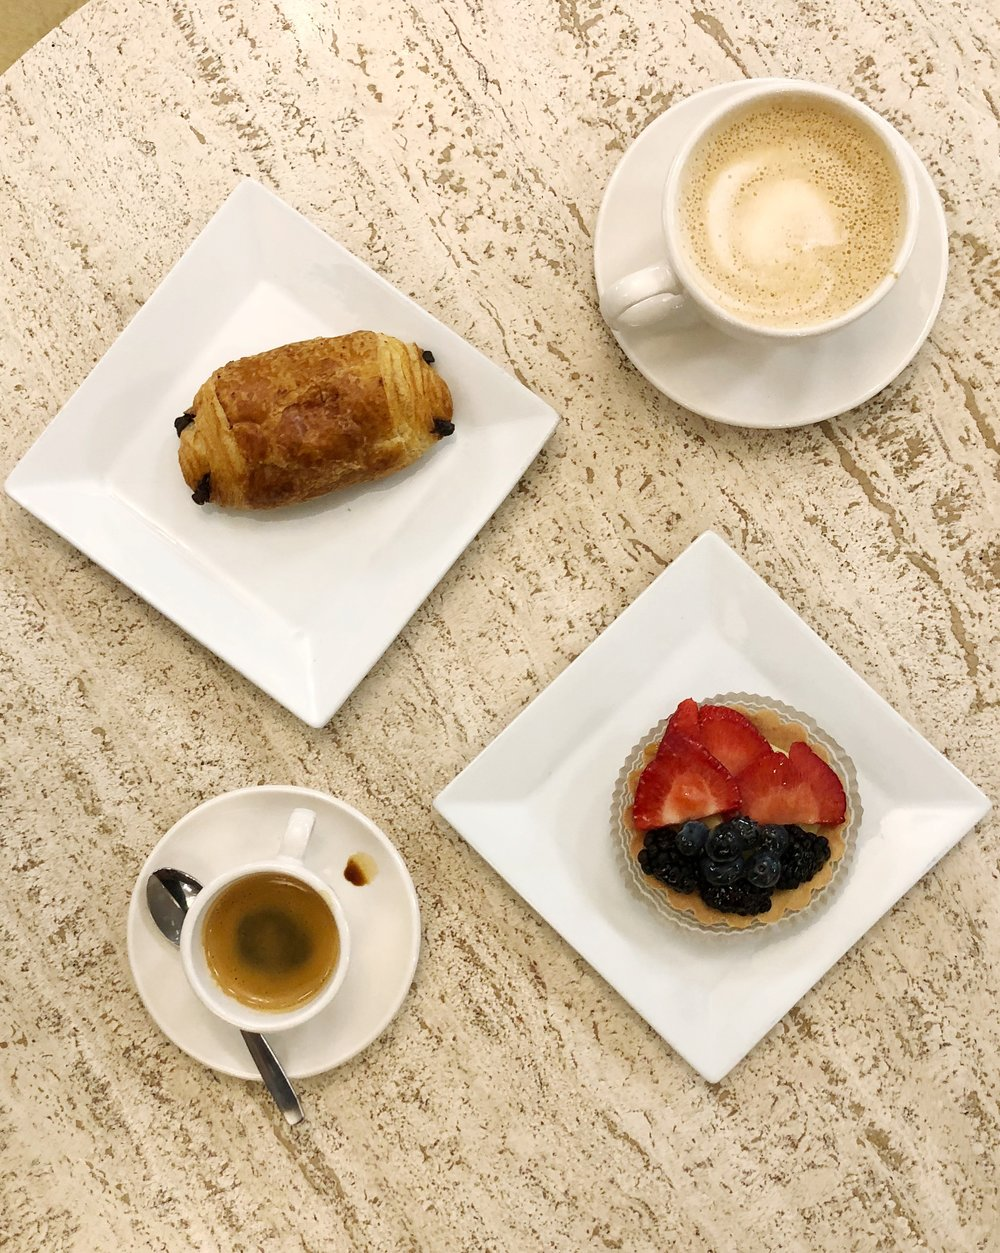 amelies-myers-park-charlotte-nc-coffee-fruit-tart